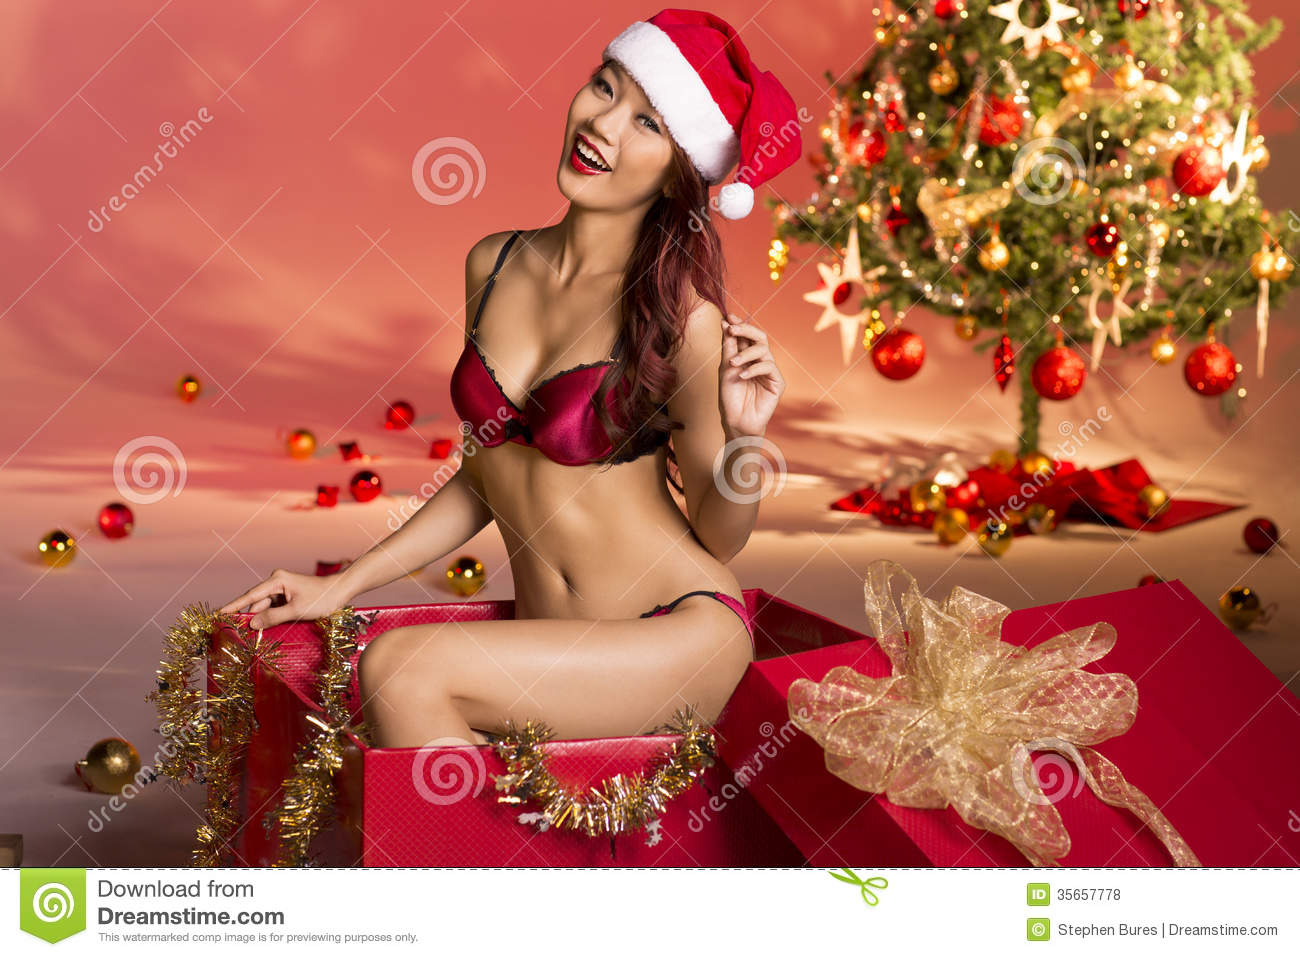 Girls weihnachts outfits asian sexy